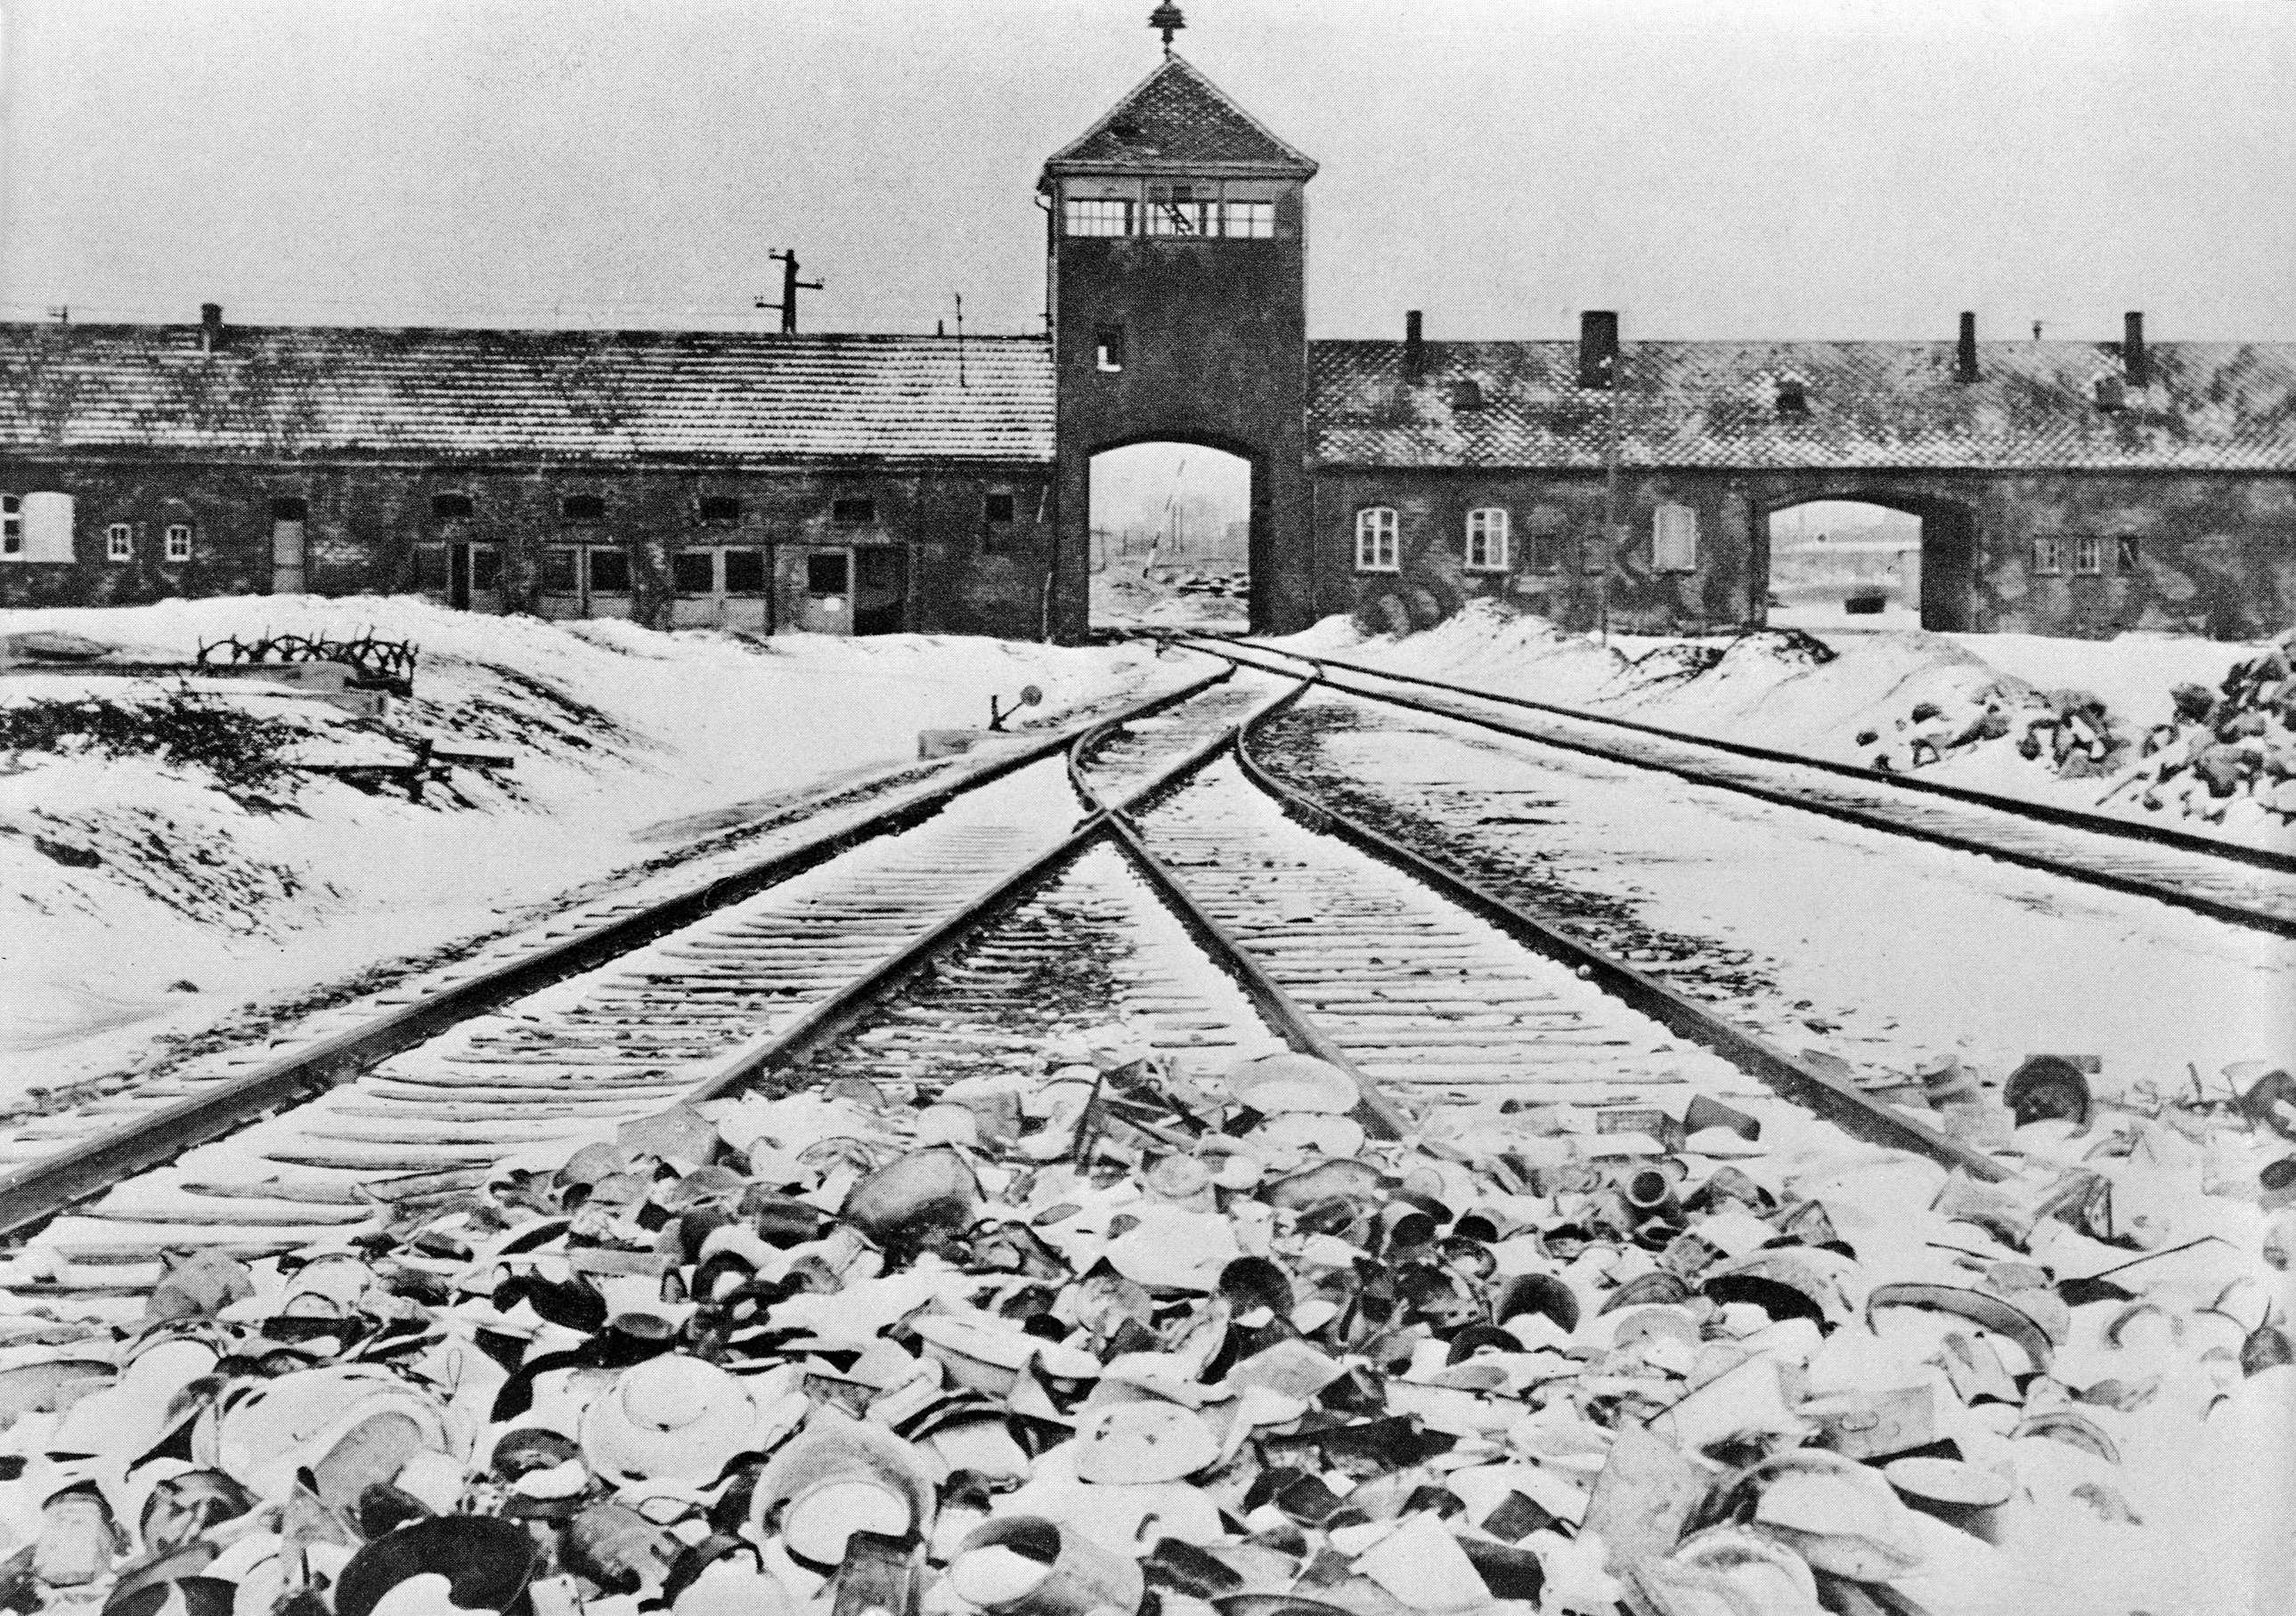 The entrance to the German concentration camp of Auschwitz. (Credit: Bettmann Archive/Getty Images)